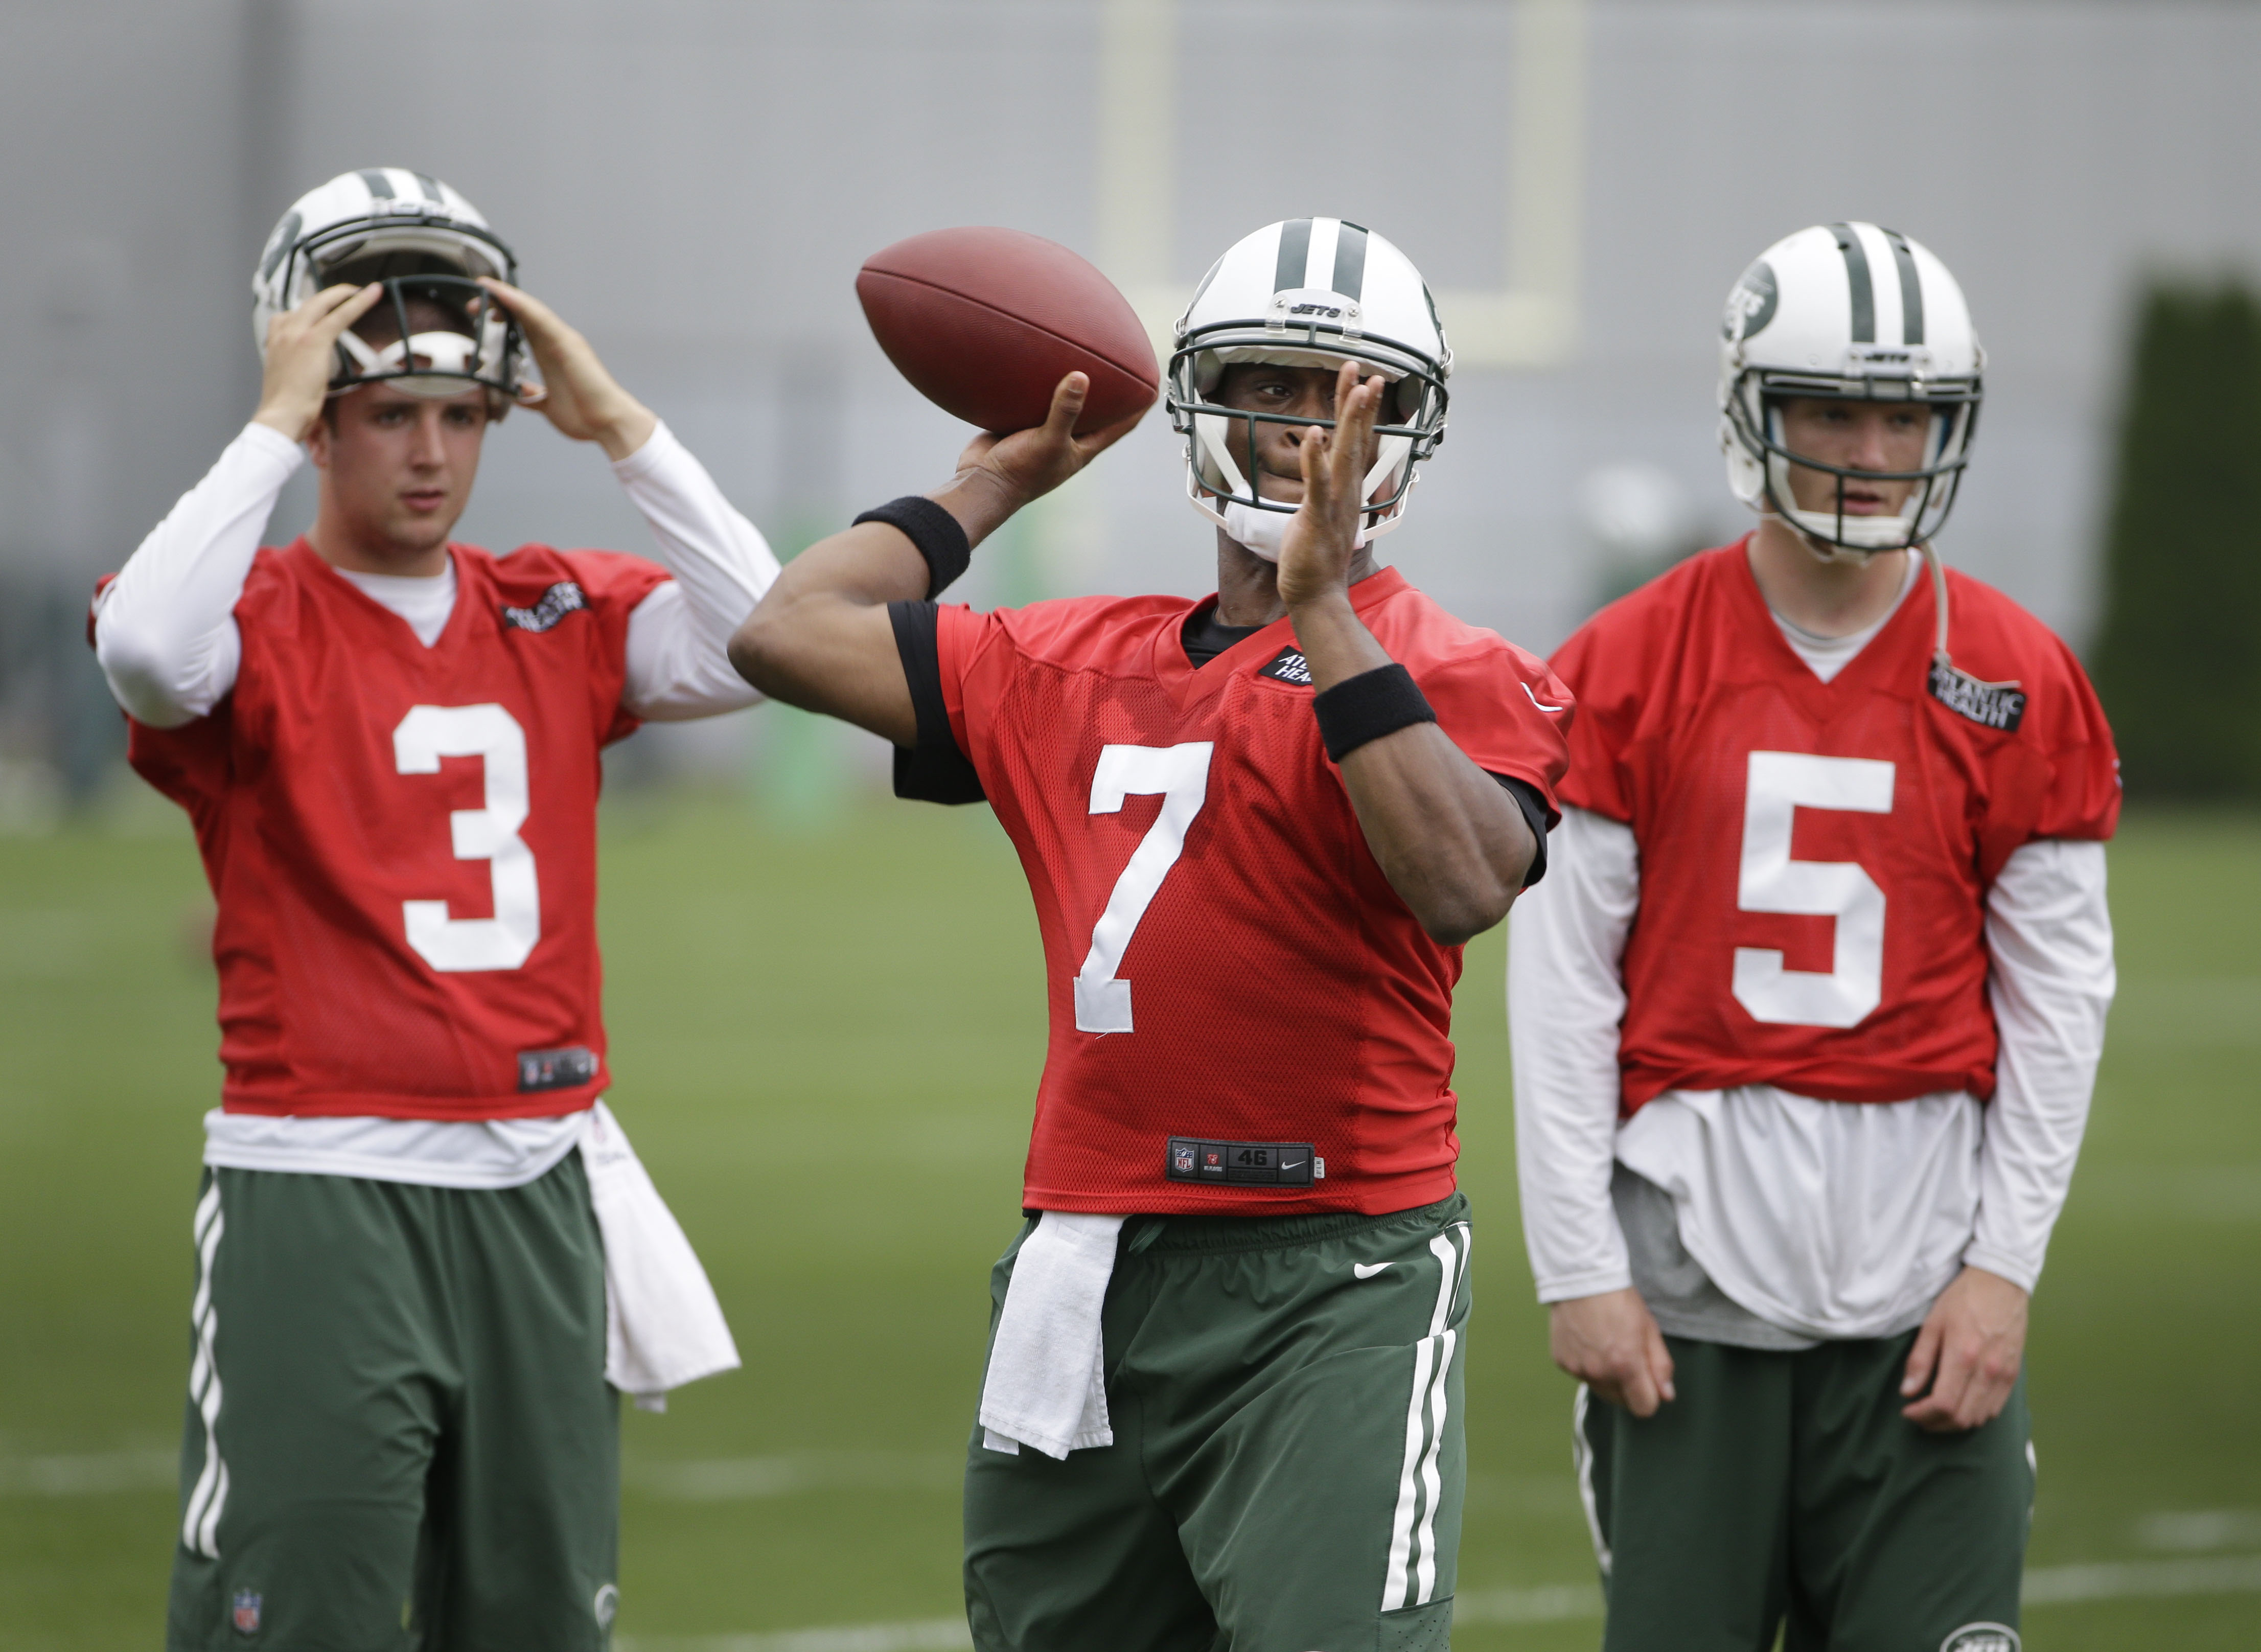 New York Jets quarterback Geno Smith (7) throws a pass during an NFL football organized team activity in Florham Park, N.J., Wednesday, May 27, 2015. Quarterbacks Matt Simms (5) and Jake Heaps (3) watch. (AP Photo/Seth Wenig)